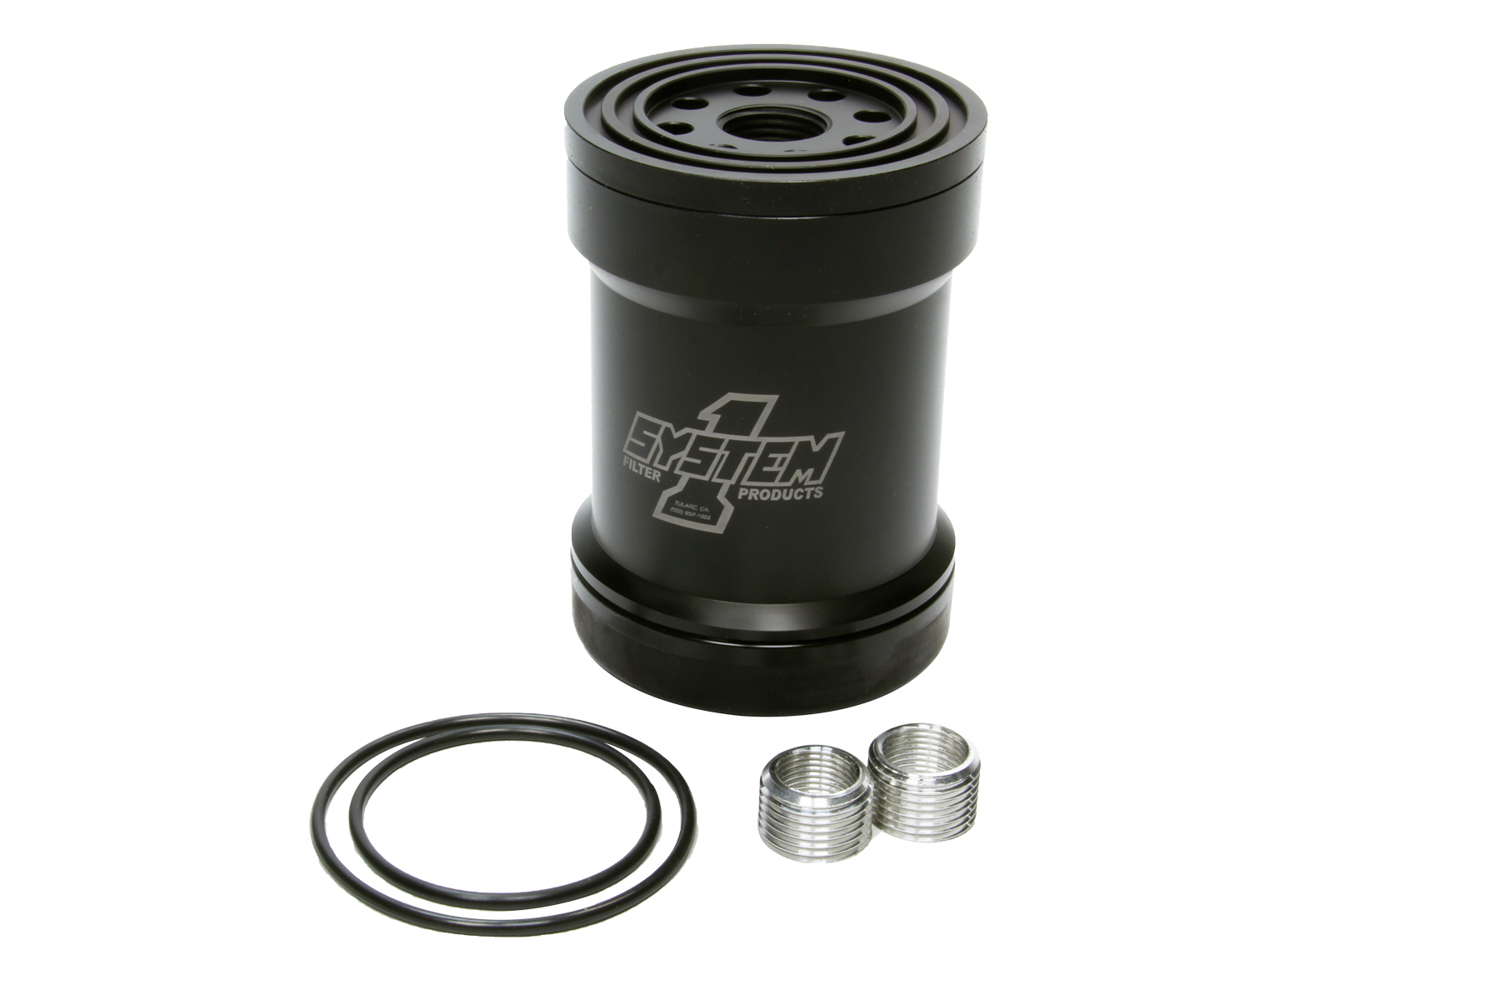 Billet Oil Filter w/Cast Cap 45 Micron - Black